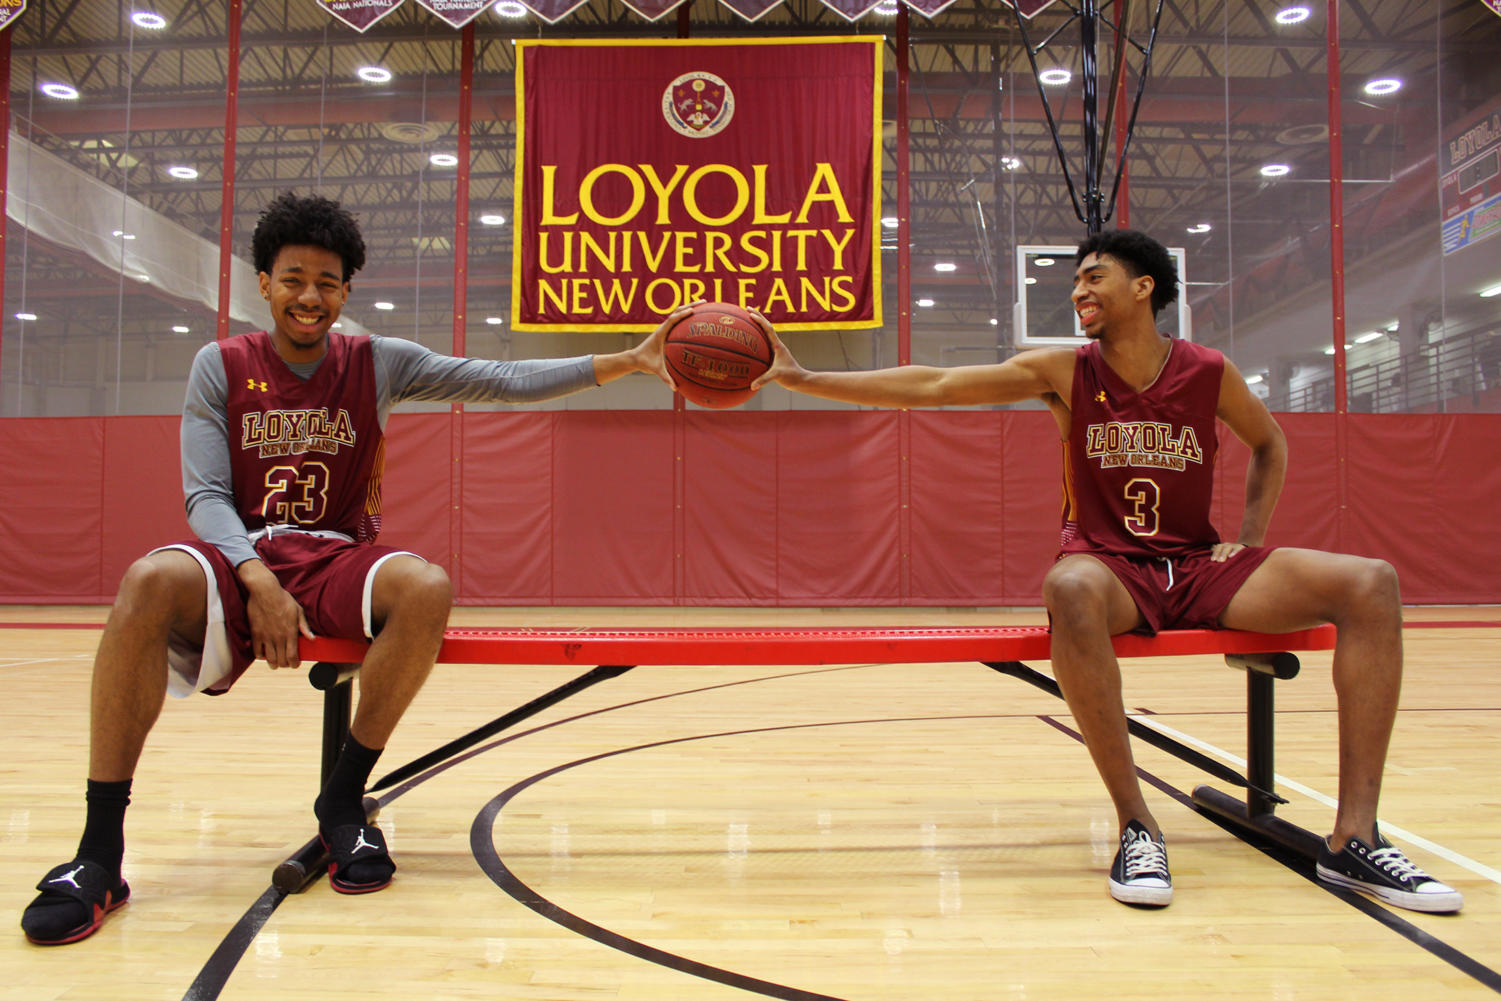 Zach Wrightsil and Myles Burns, mass communication freshmen, start on the Loyola men's basketball team. Their first year on the team has been met with notable performances and high statistical averages. Photo credit: Anum Siddiqui